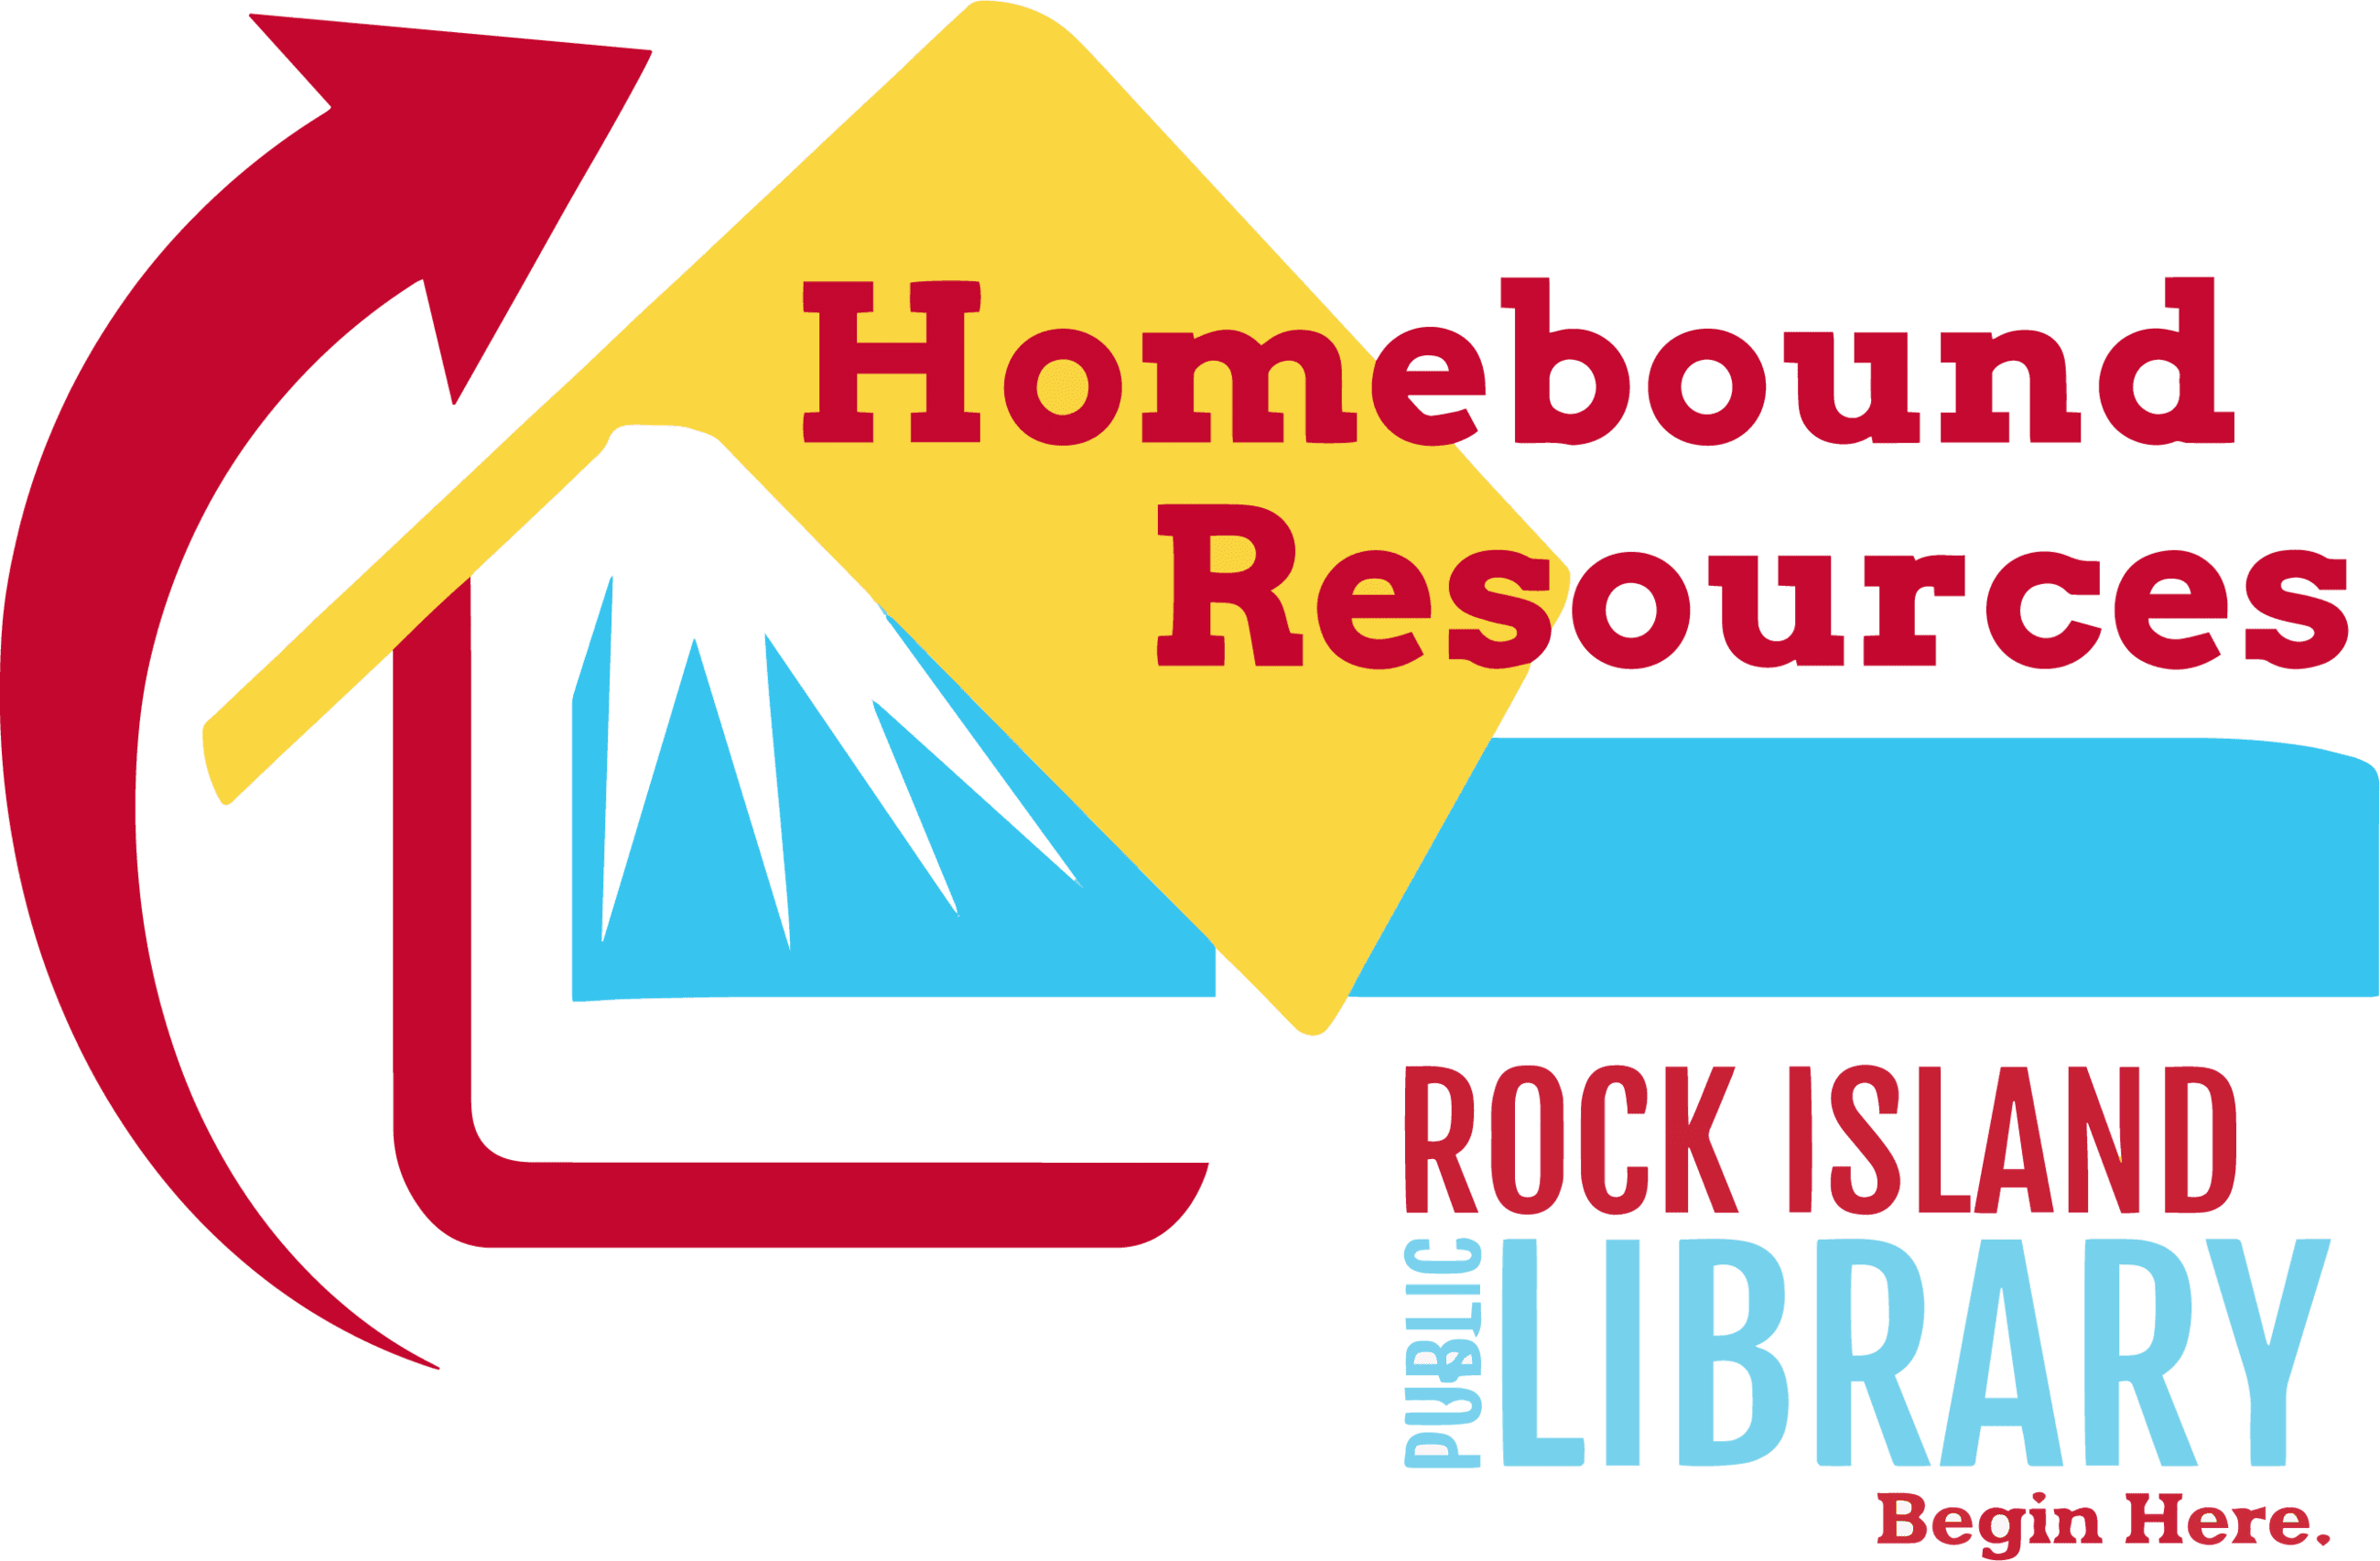 HomeBound_Resources_Logo_Stylized House roof with words Homebound Resources and library logo